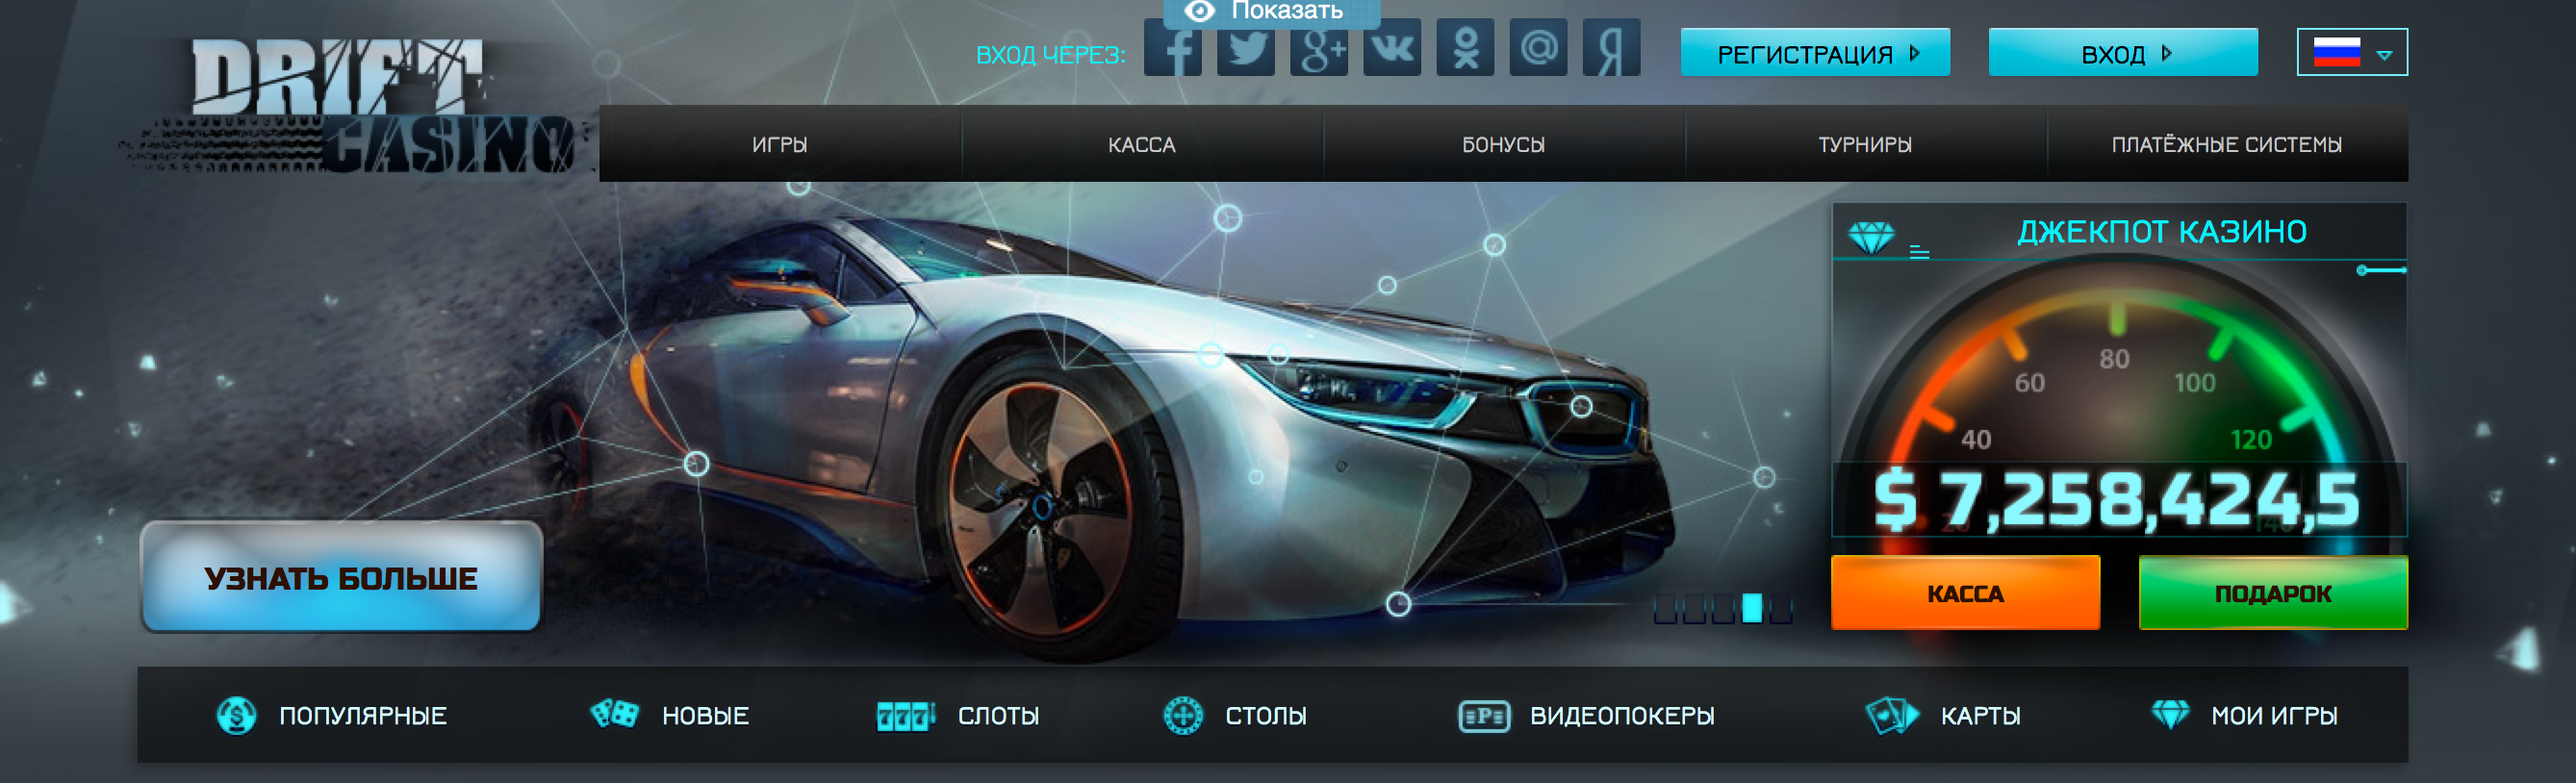 официальный сайт drift casino регистрация